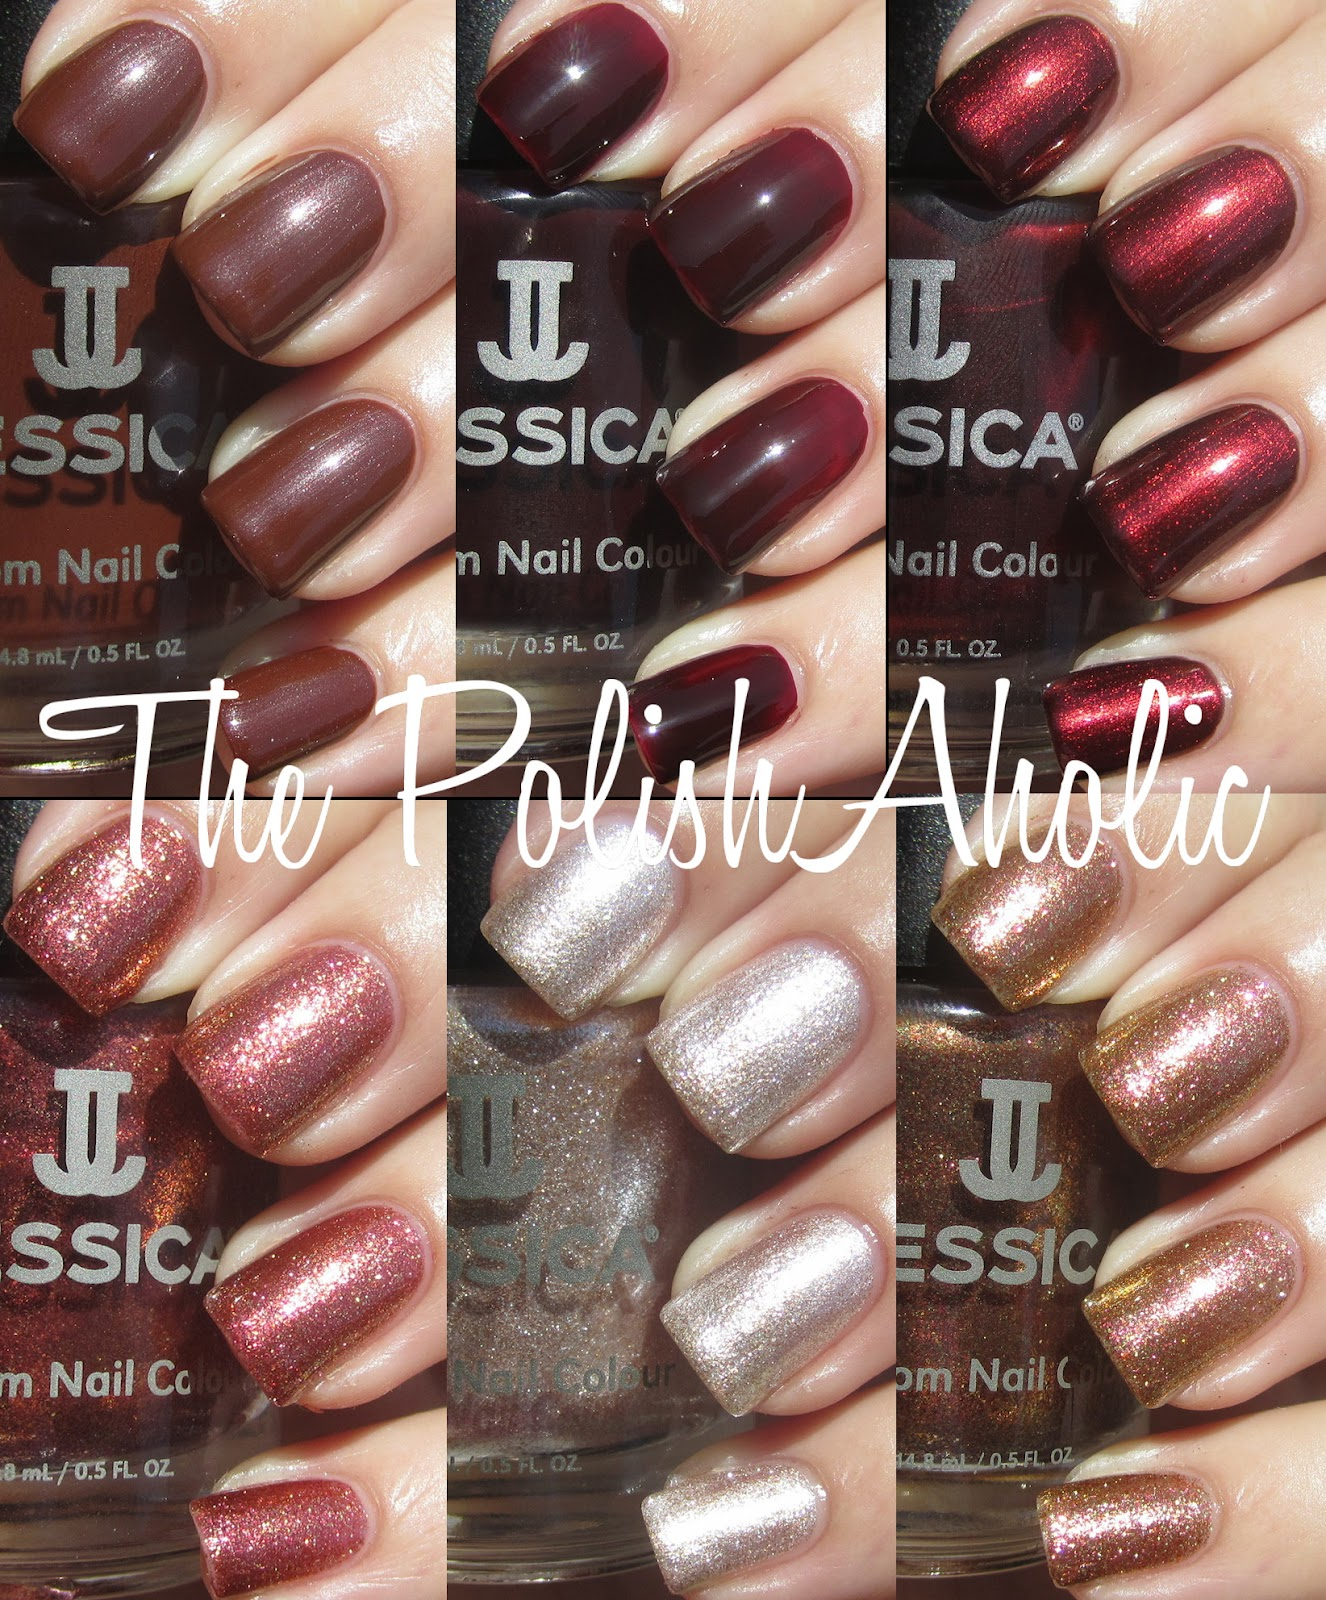 The PolishAholic: Jessica Fall 2012 Spicy Dream Collection Swatches